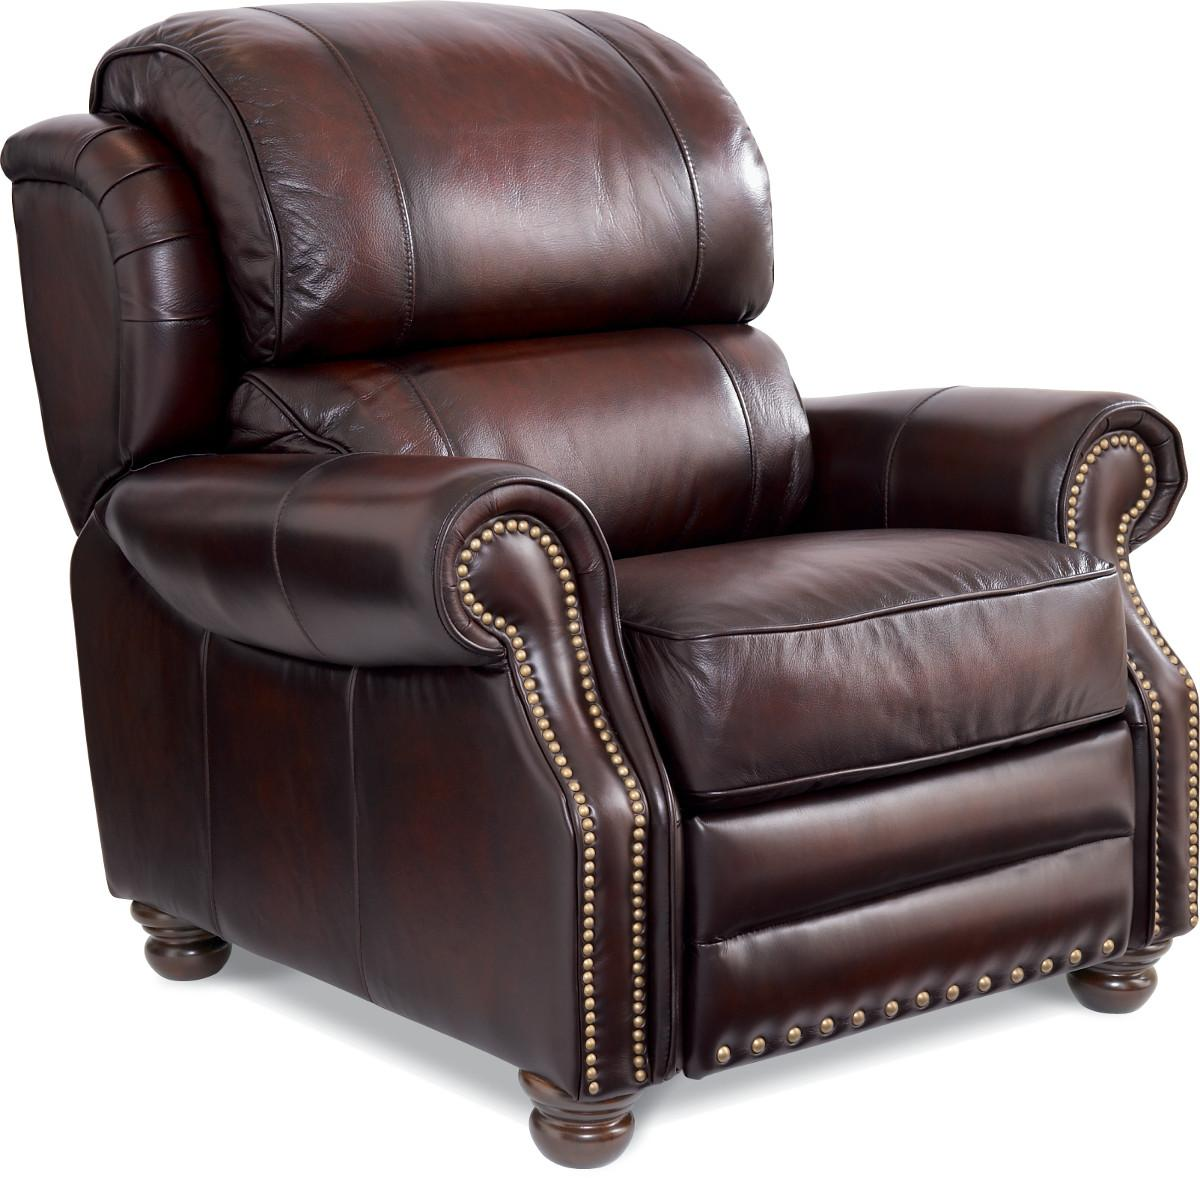 Jamison Traditional High Leg Leather Recliner By La Z Boy